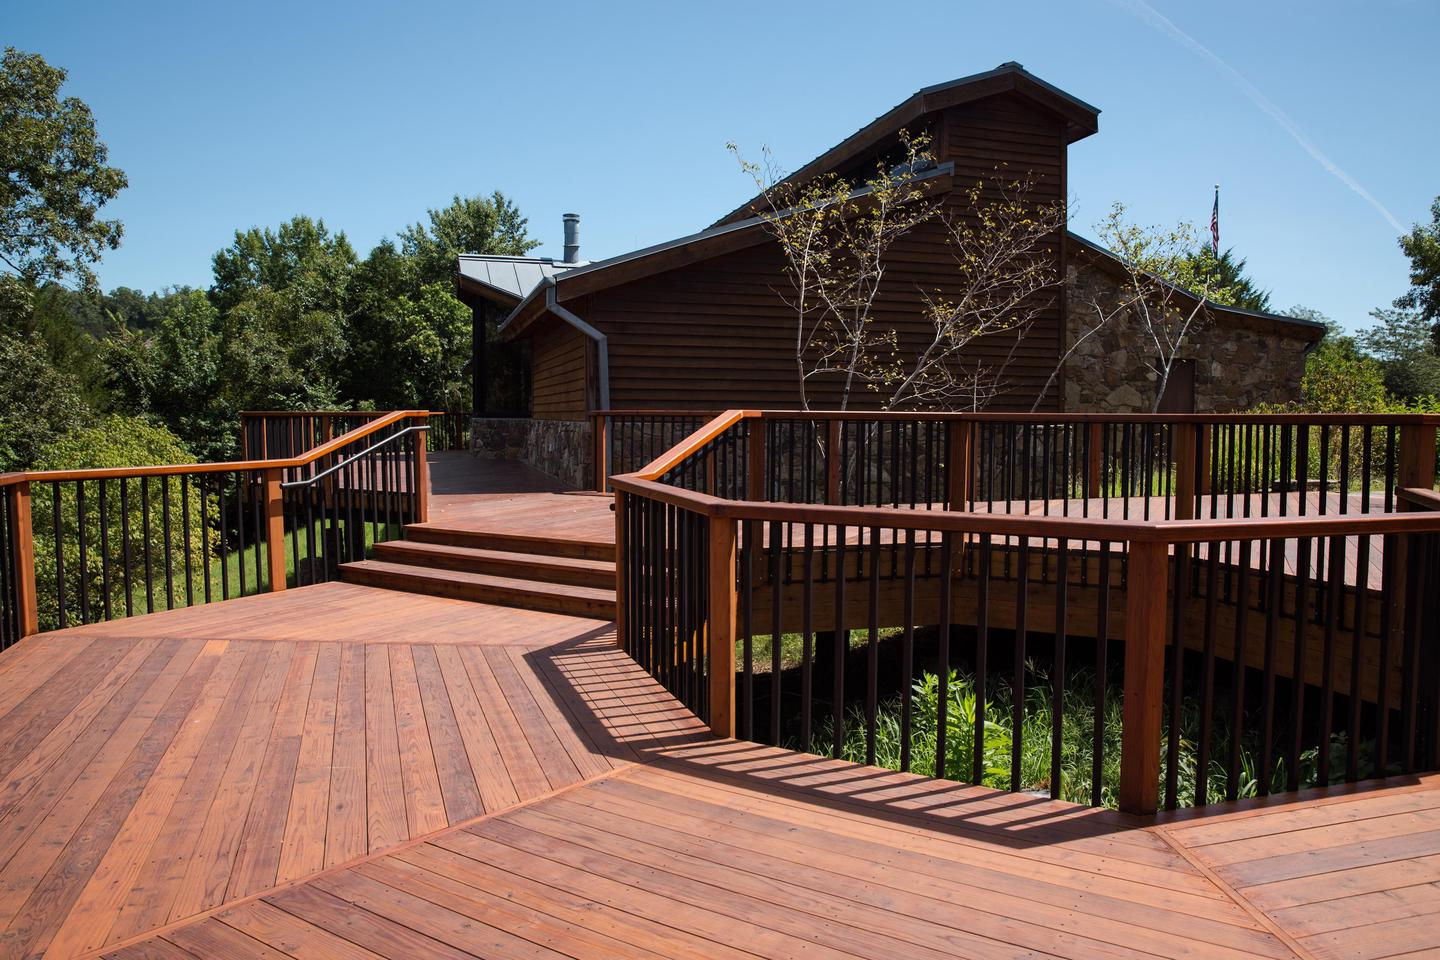 Tyler Bend Visitor Center DeckThe deck is a great spot to take in views at the Tyler Bend Visitor Center.